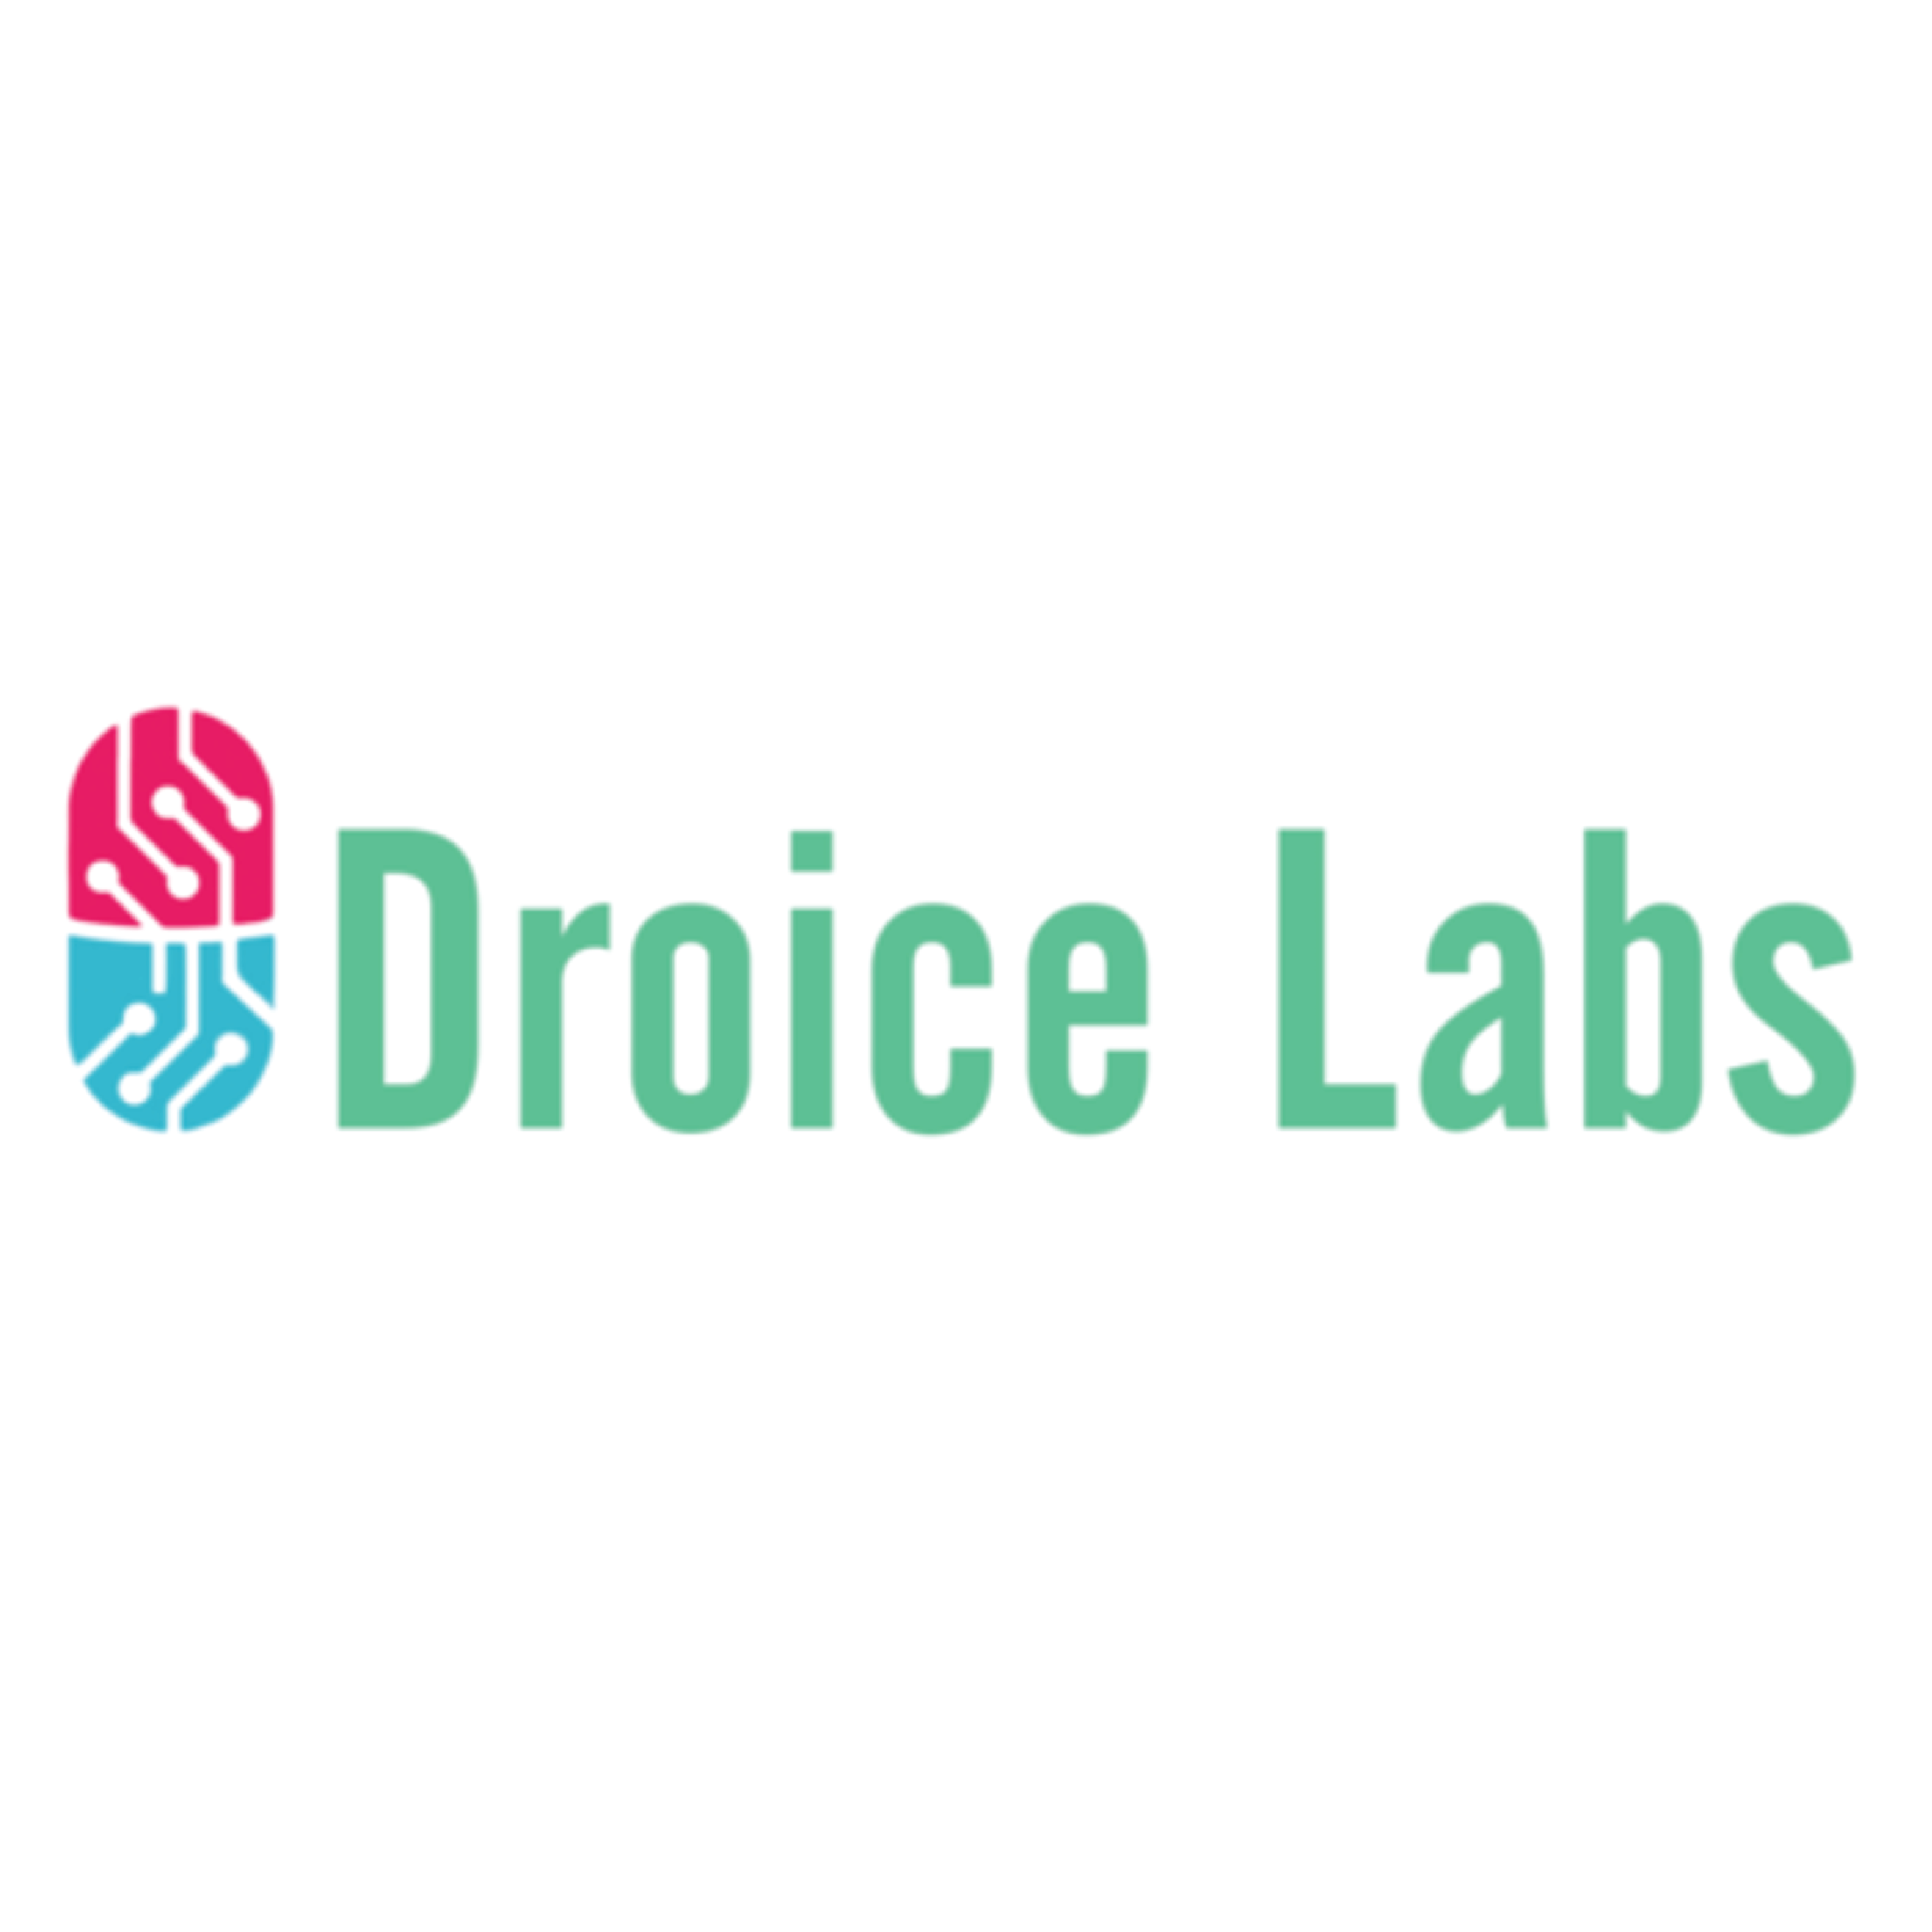 Droice Labs is a clinician-facing platform that helps doctors choose the best drug for patients.